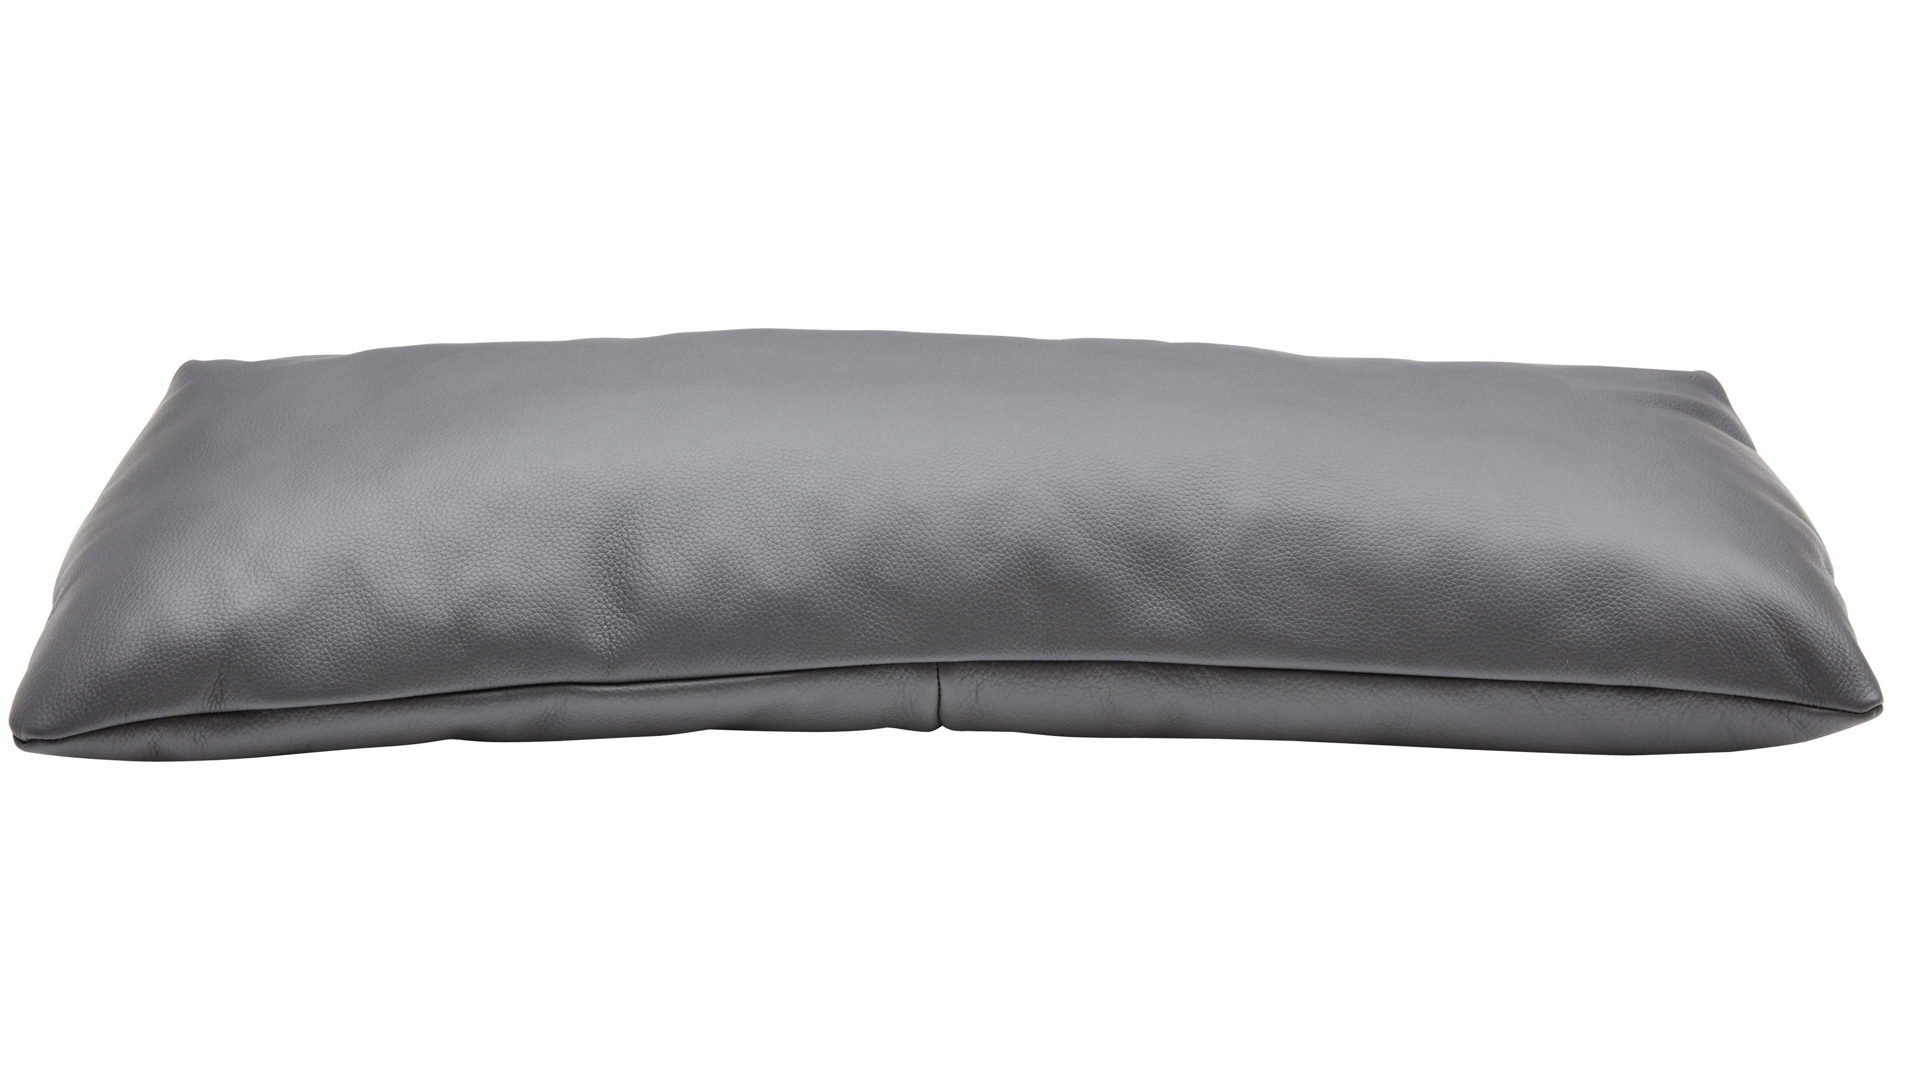 Kissen Interliving aus Stoff in Grau Interliving Sofa Serie 4102 – Nierenkissen fangofarbenes Leder Mercury – ca. 67 x 26 cm